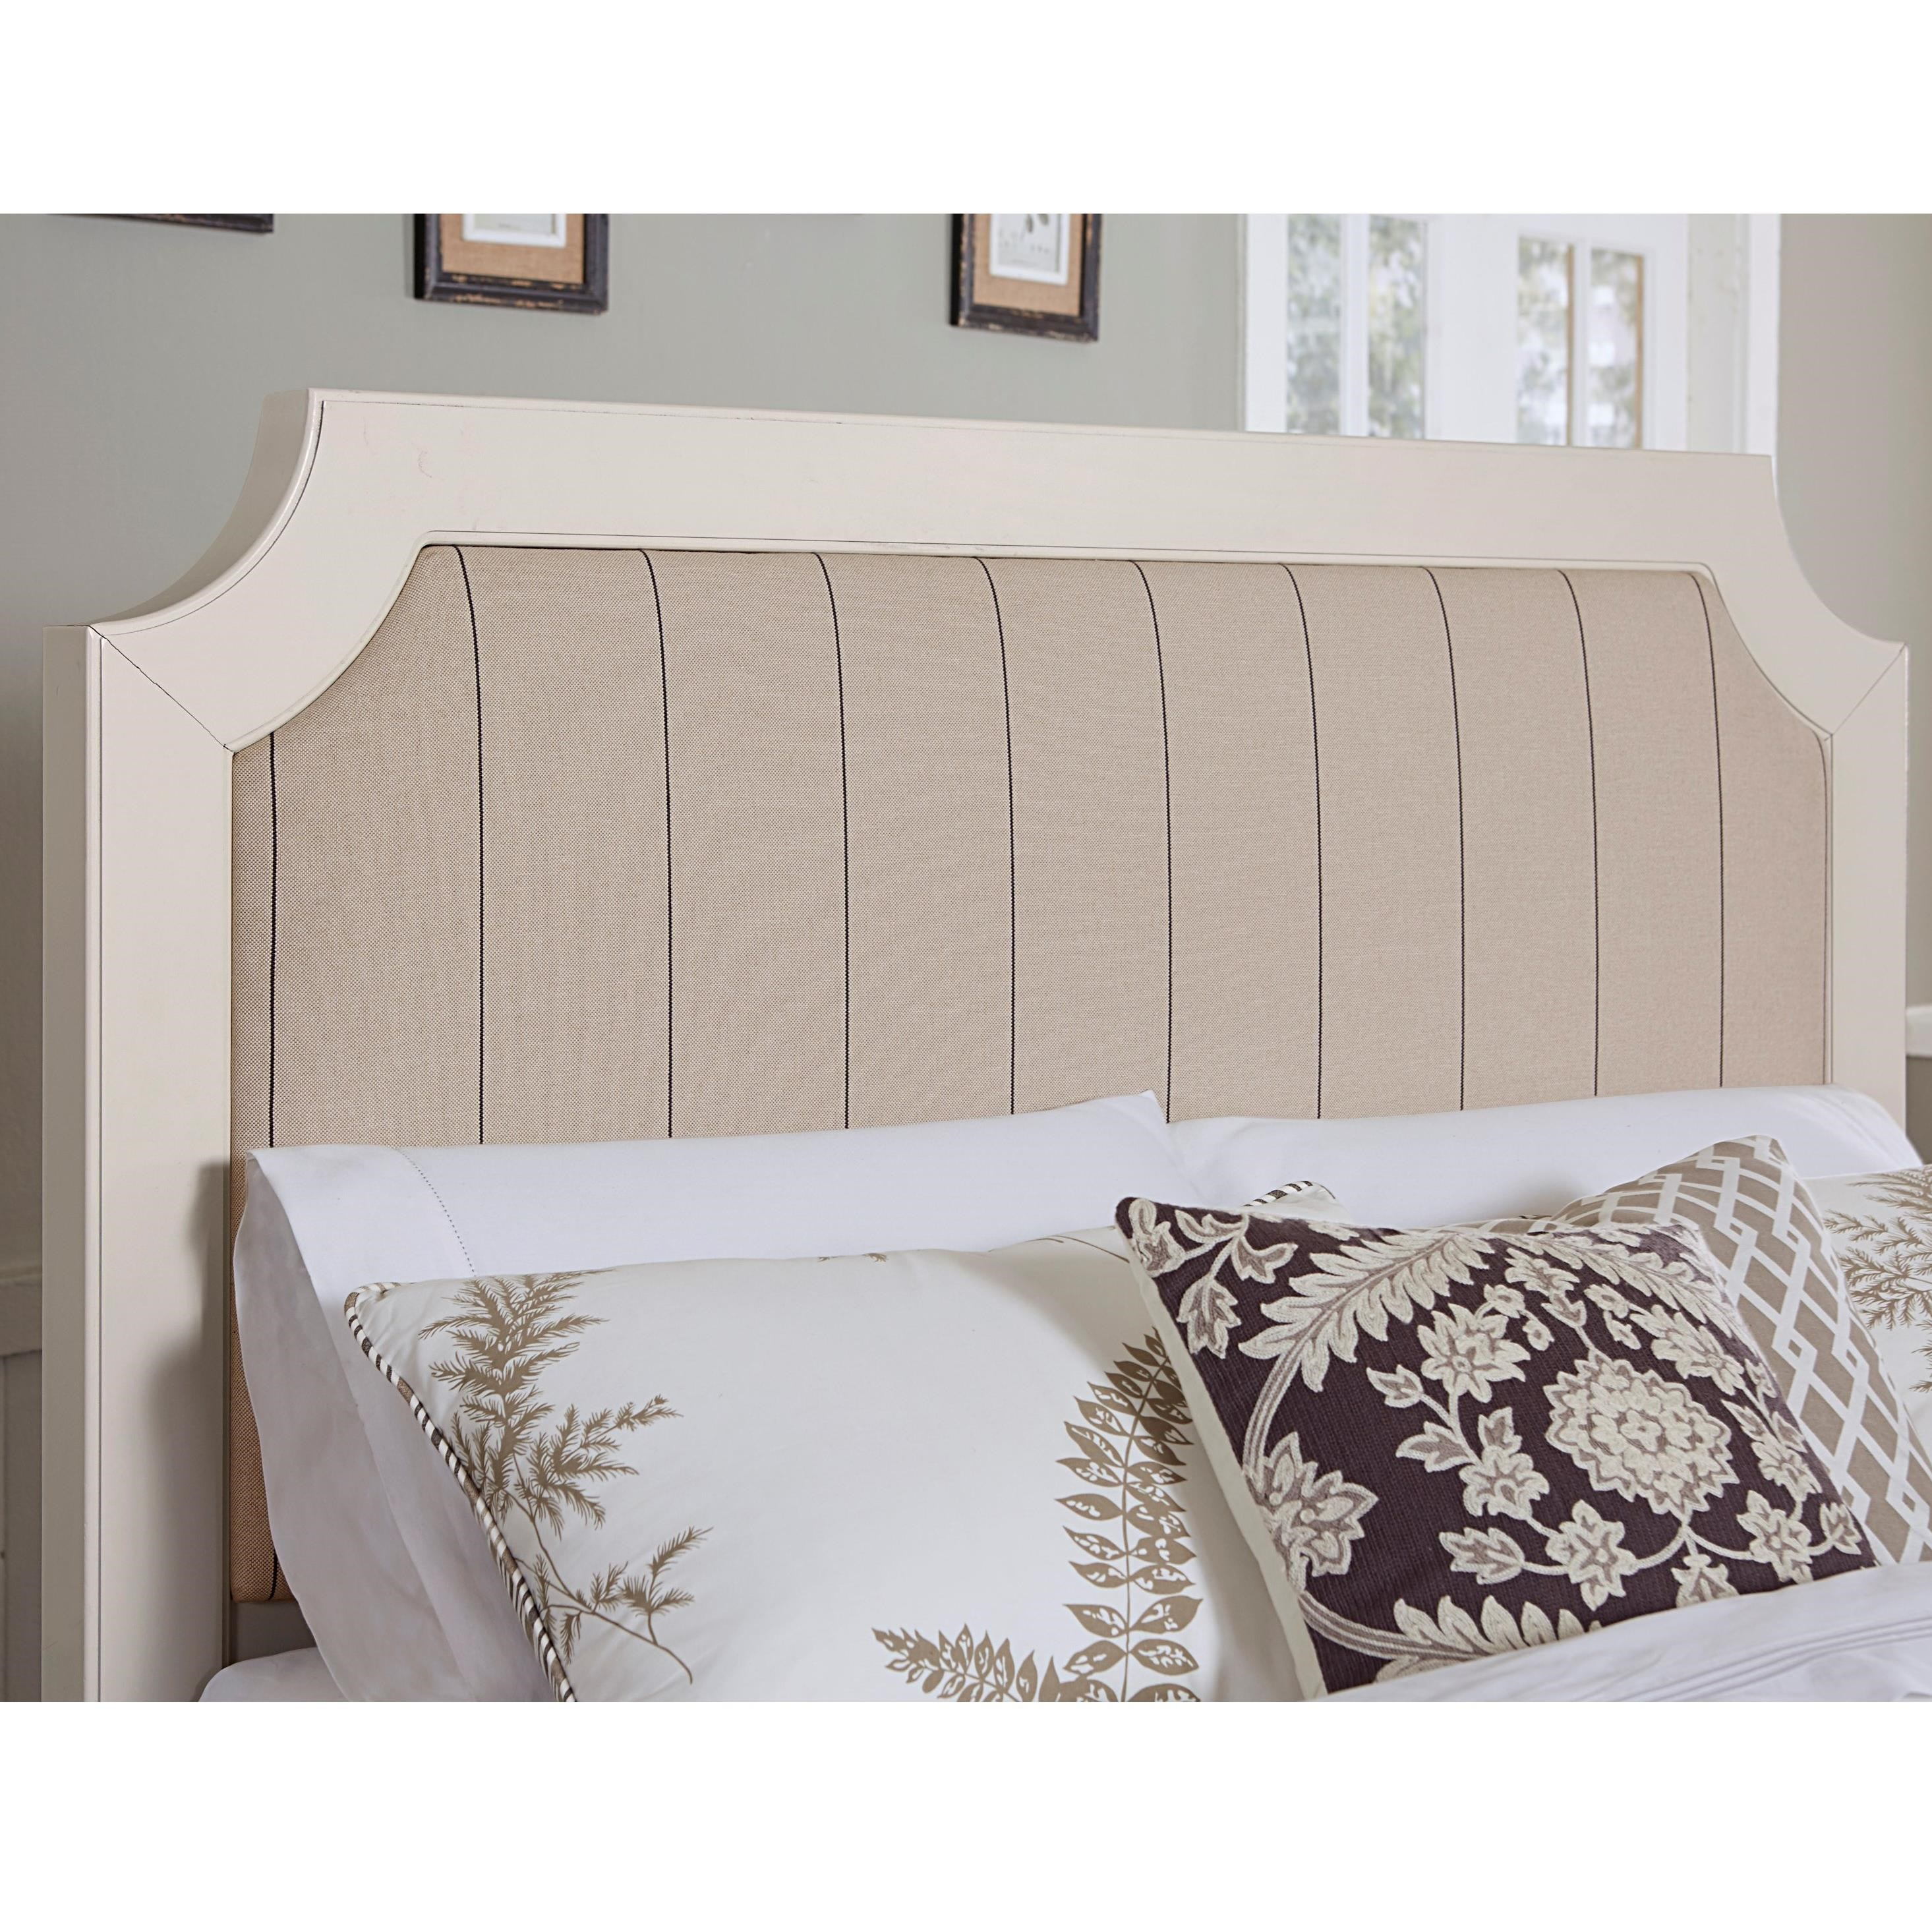 Bungalow Queen Upholstered Headboard by Laurel Mercantile Co. at Suburban Furniture